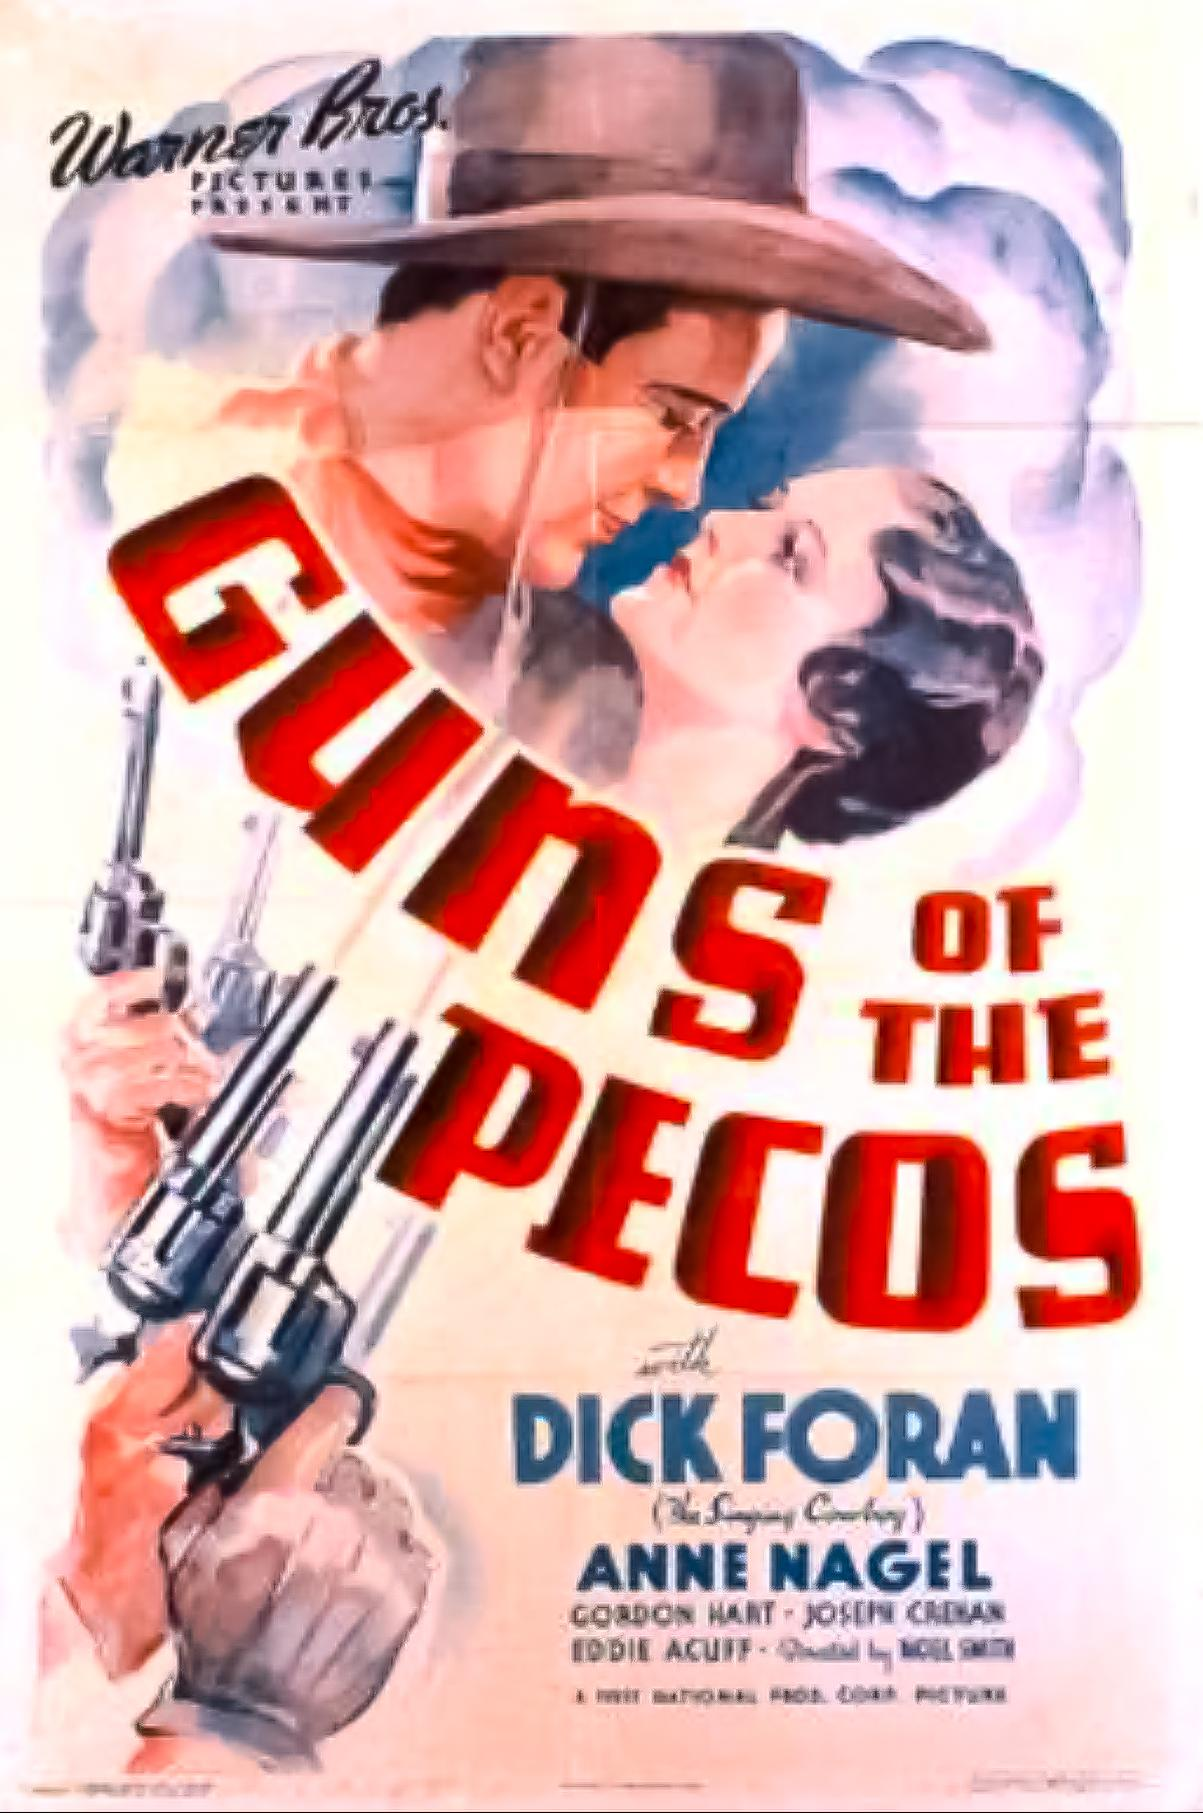 Dick Foran and Anne Nagel in Guns of the Pecos (1937)